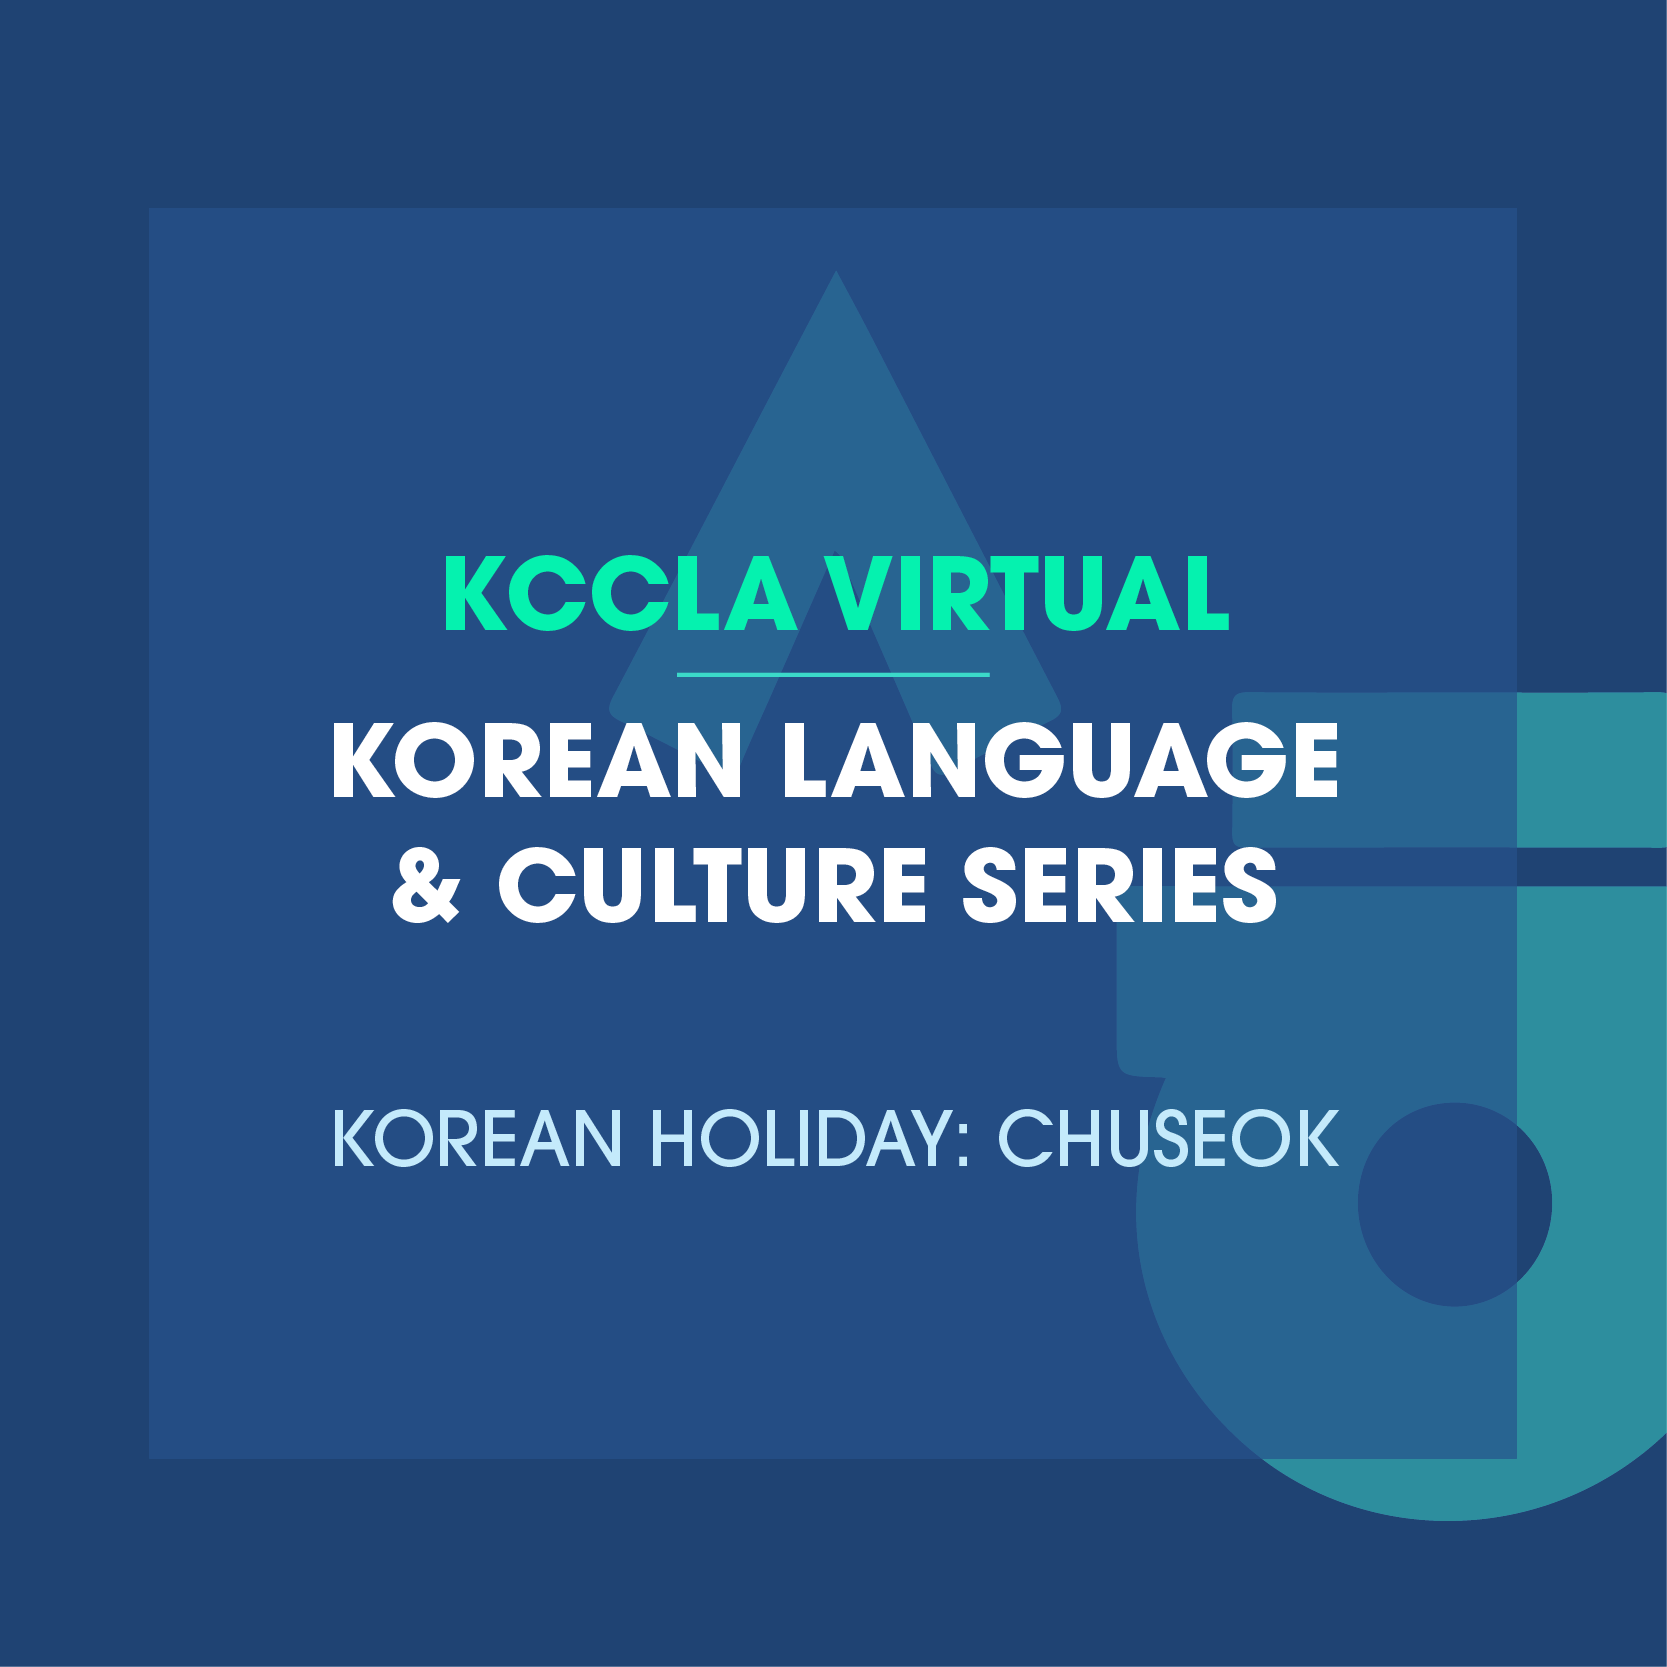 Korean Language & Culture Series(Korean Holiday: Chuseok)